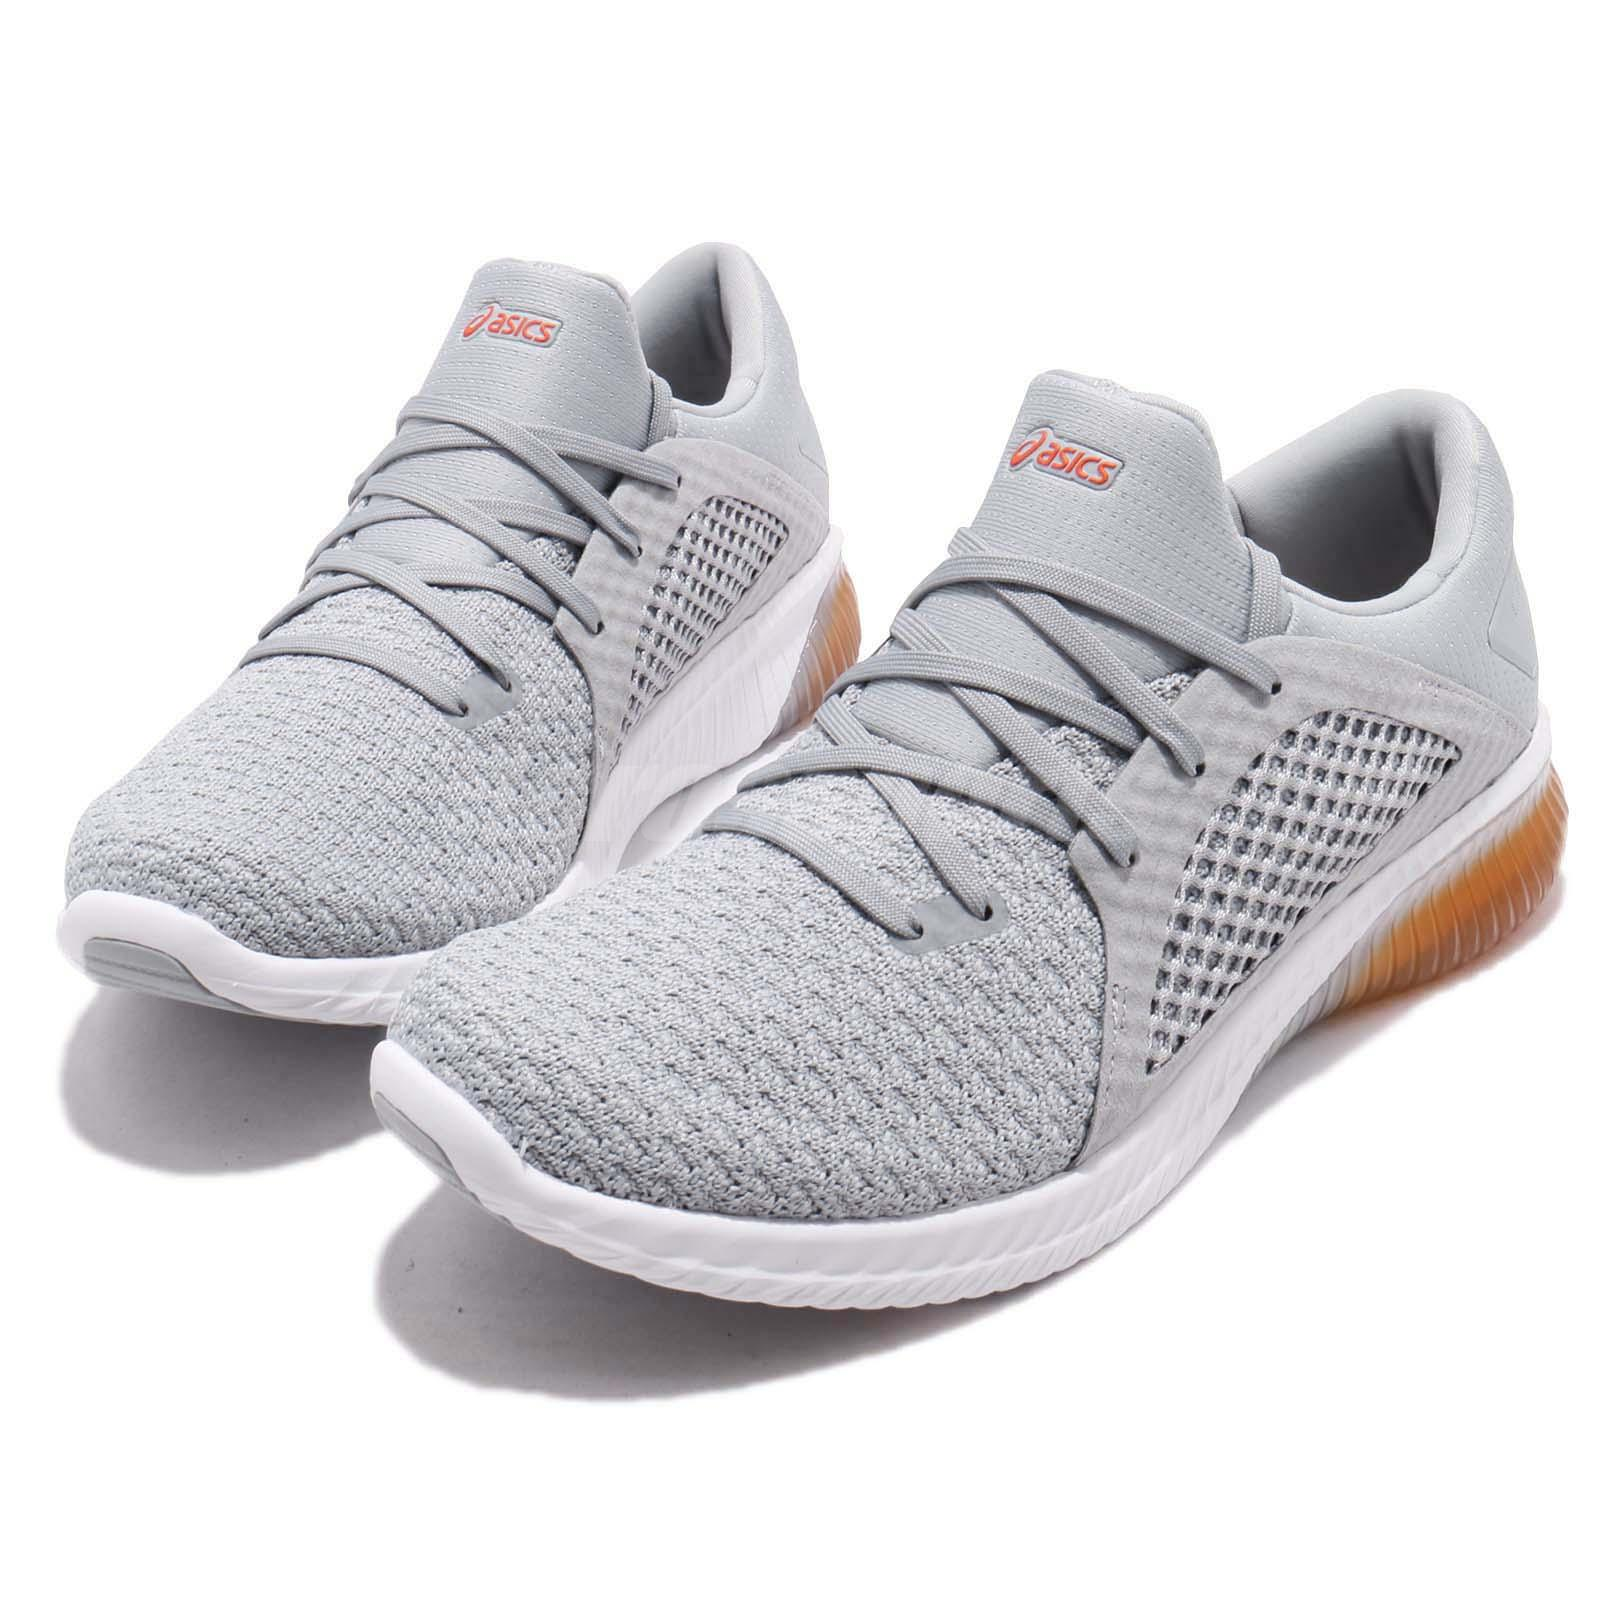 Details about Asics Gel-Kenun Knit MX Grey White Men Running Shoes Sneakers 1021A025-020